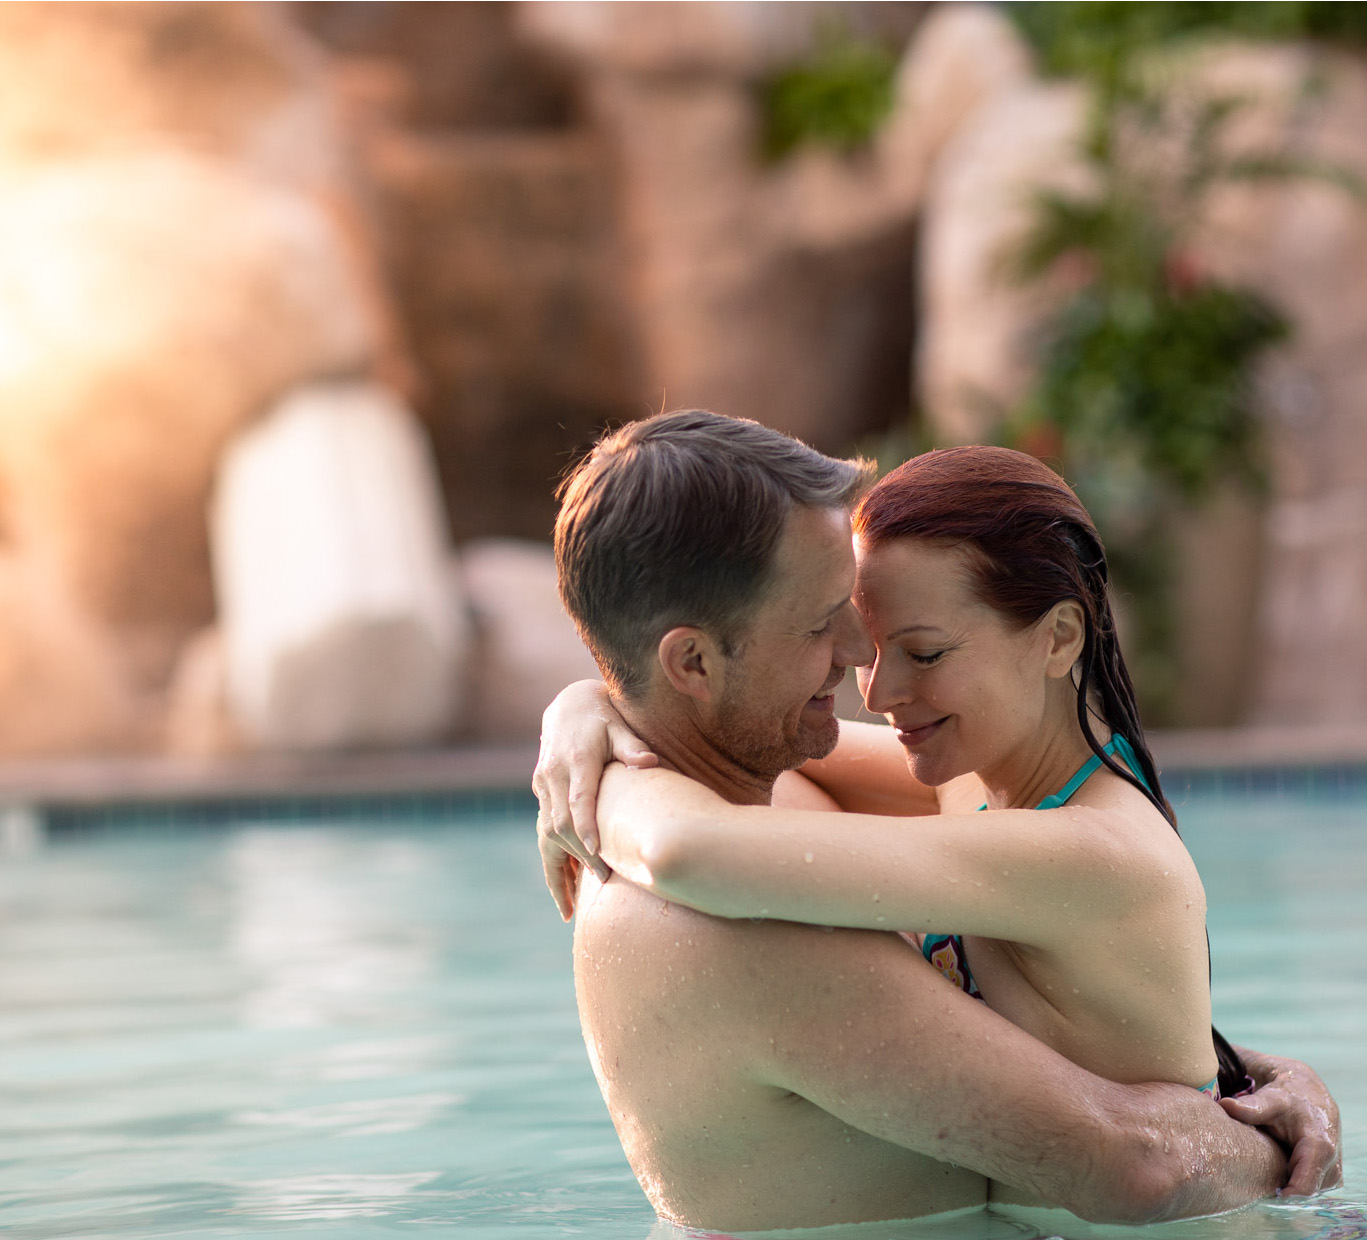 Couples embrace in a pool